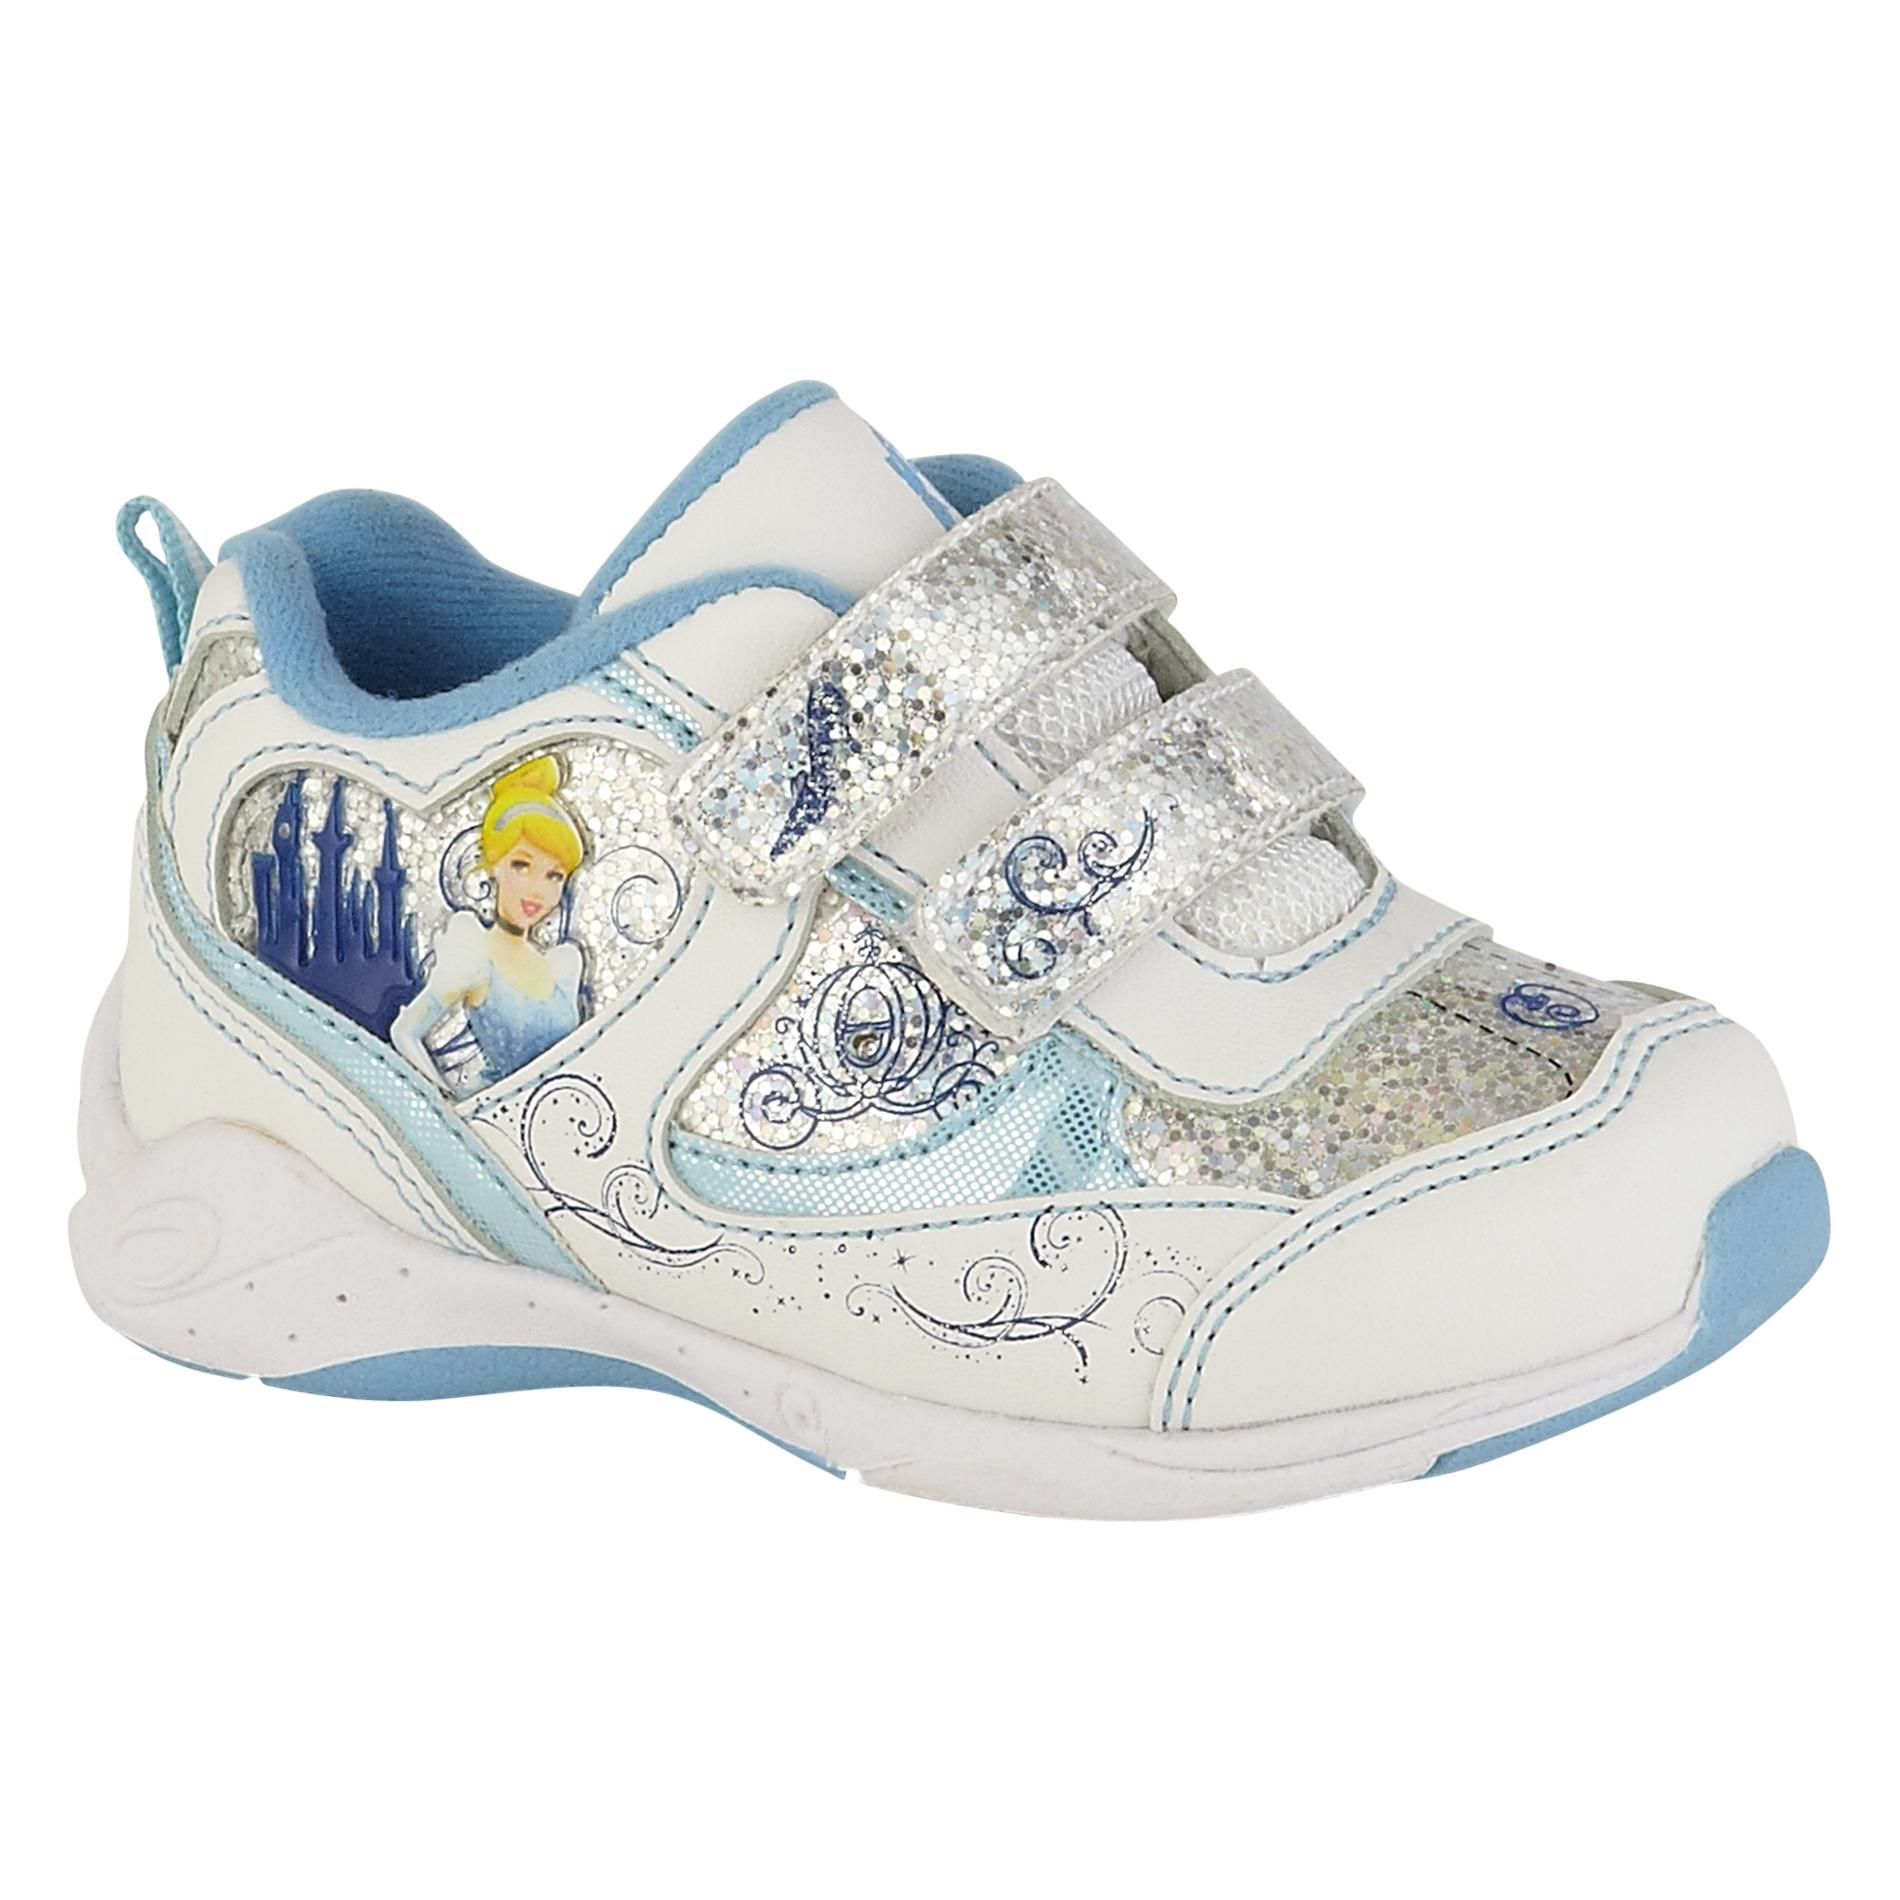 Toddler Girl's Cinderella Athletic Shoe - White